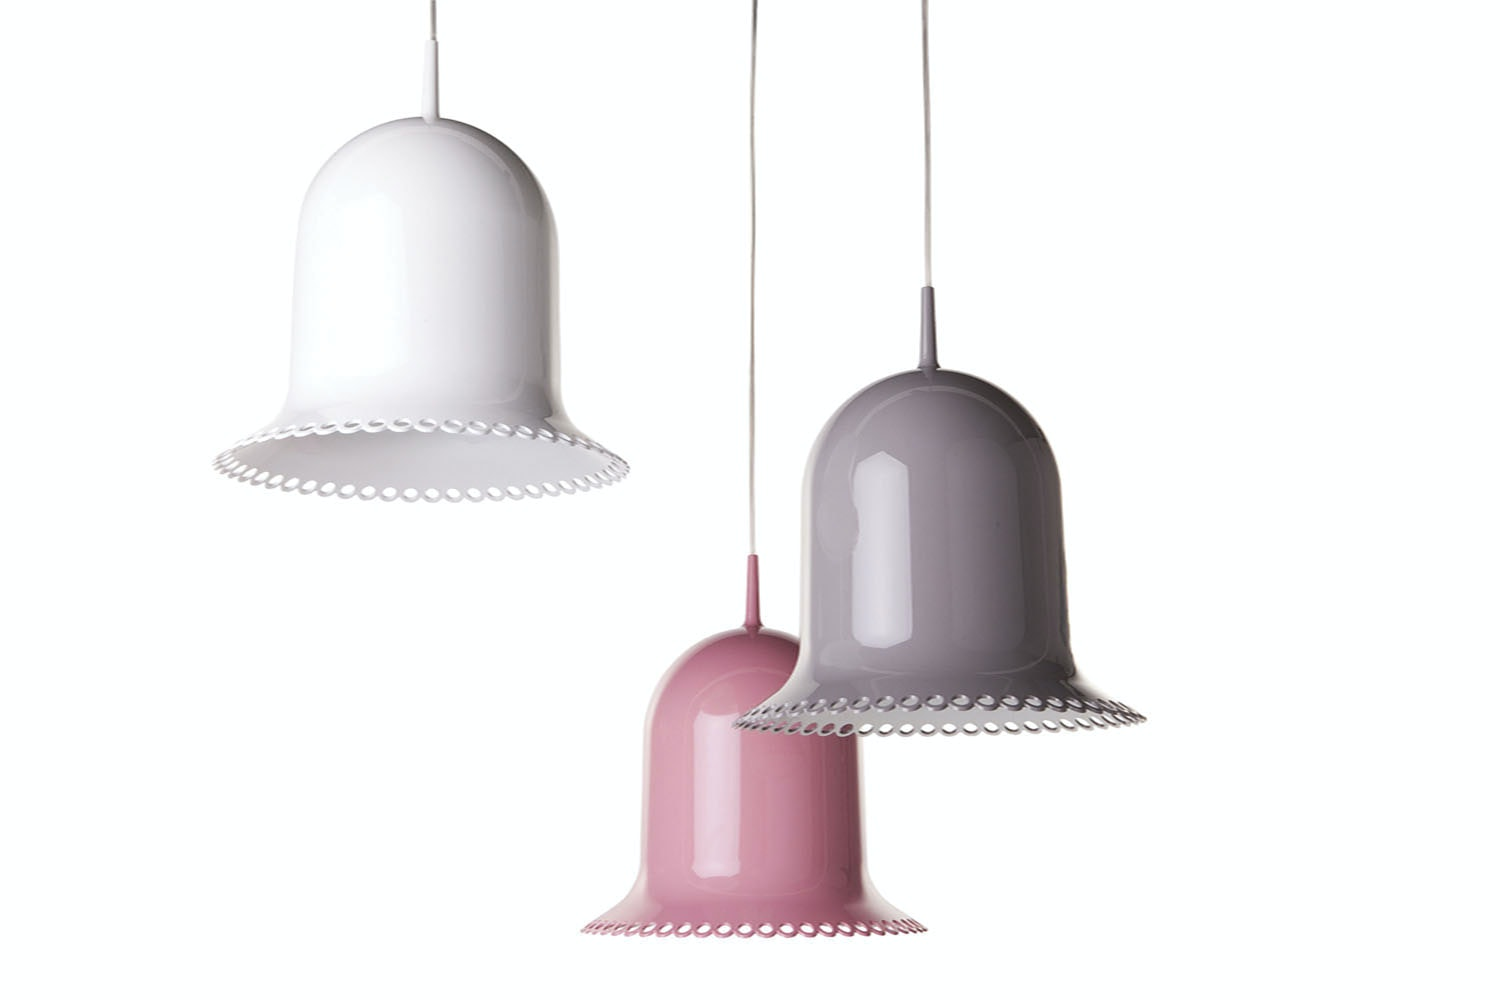 Lolita Suspension Lamp by Nika Zupanc for Moooi